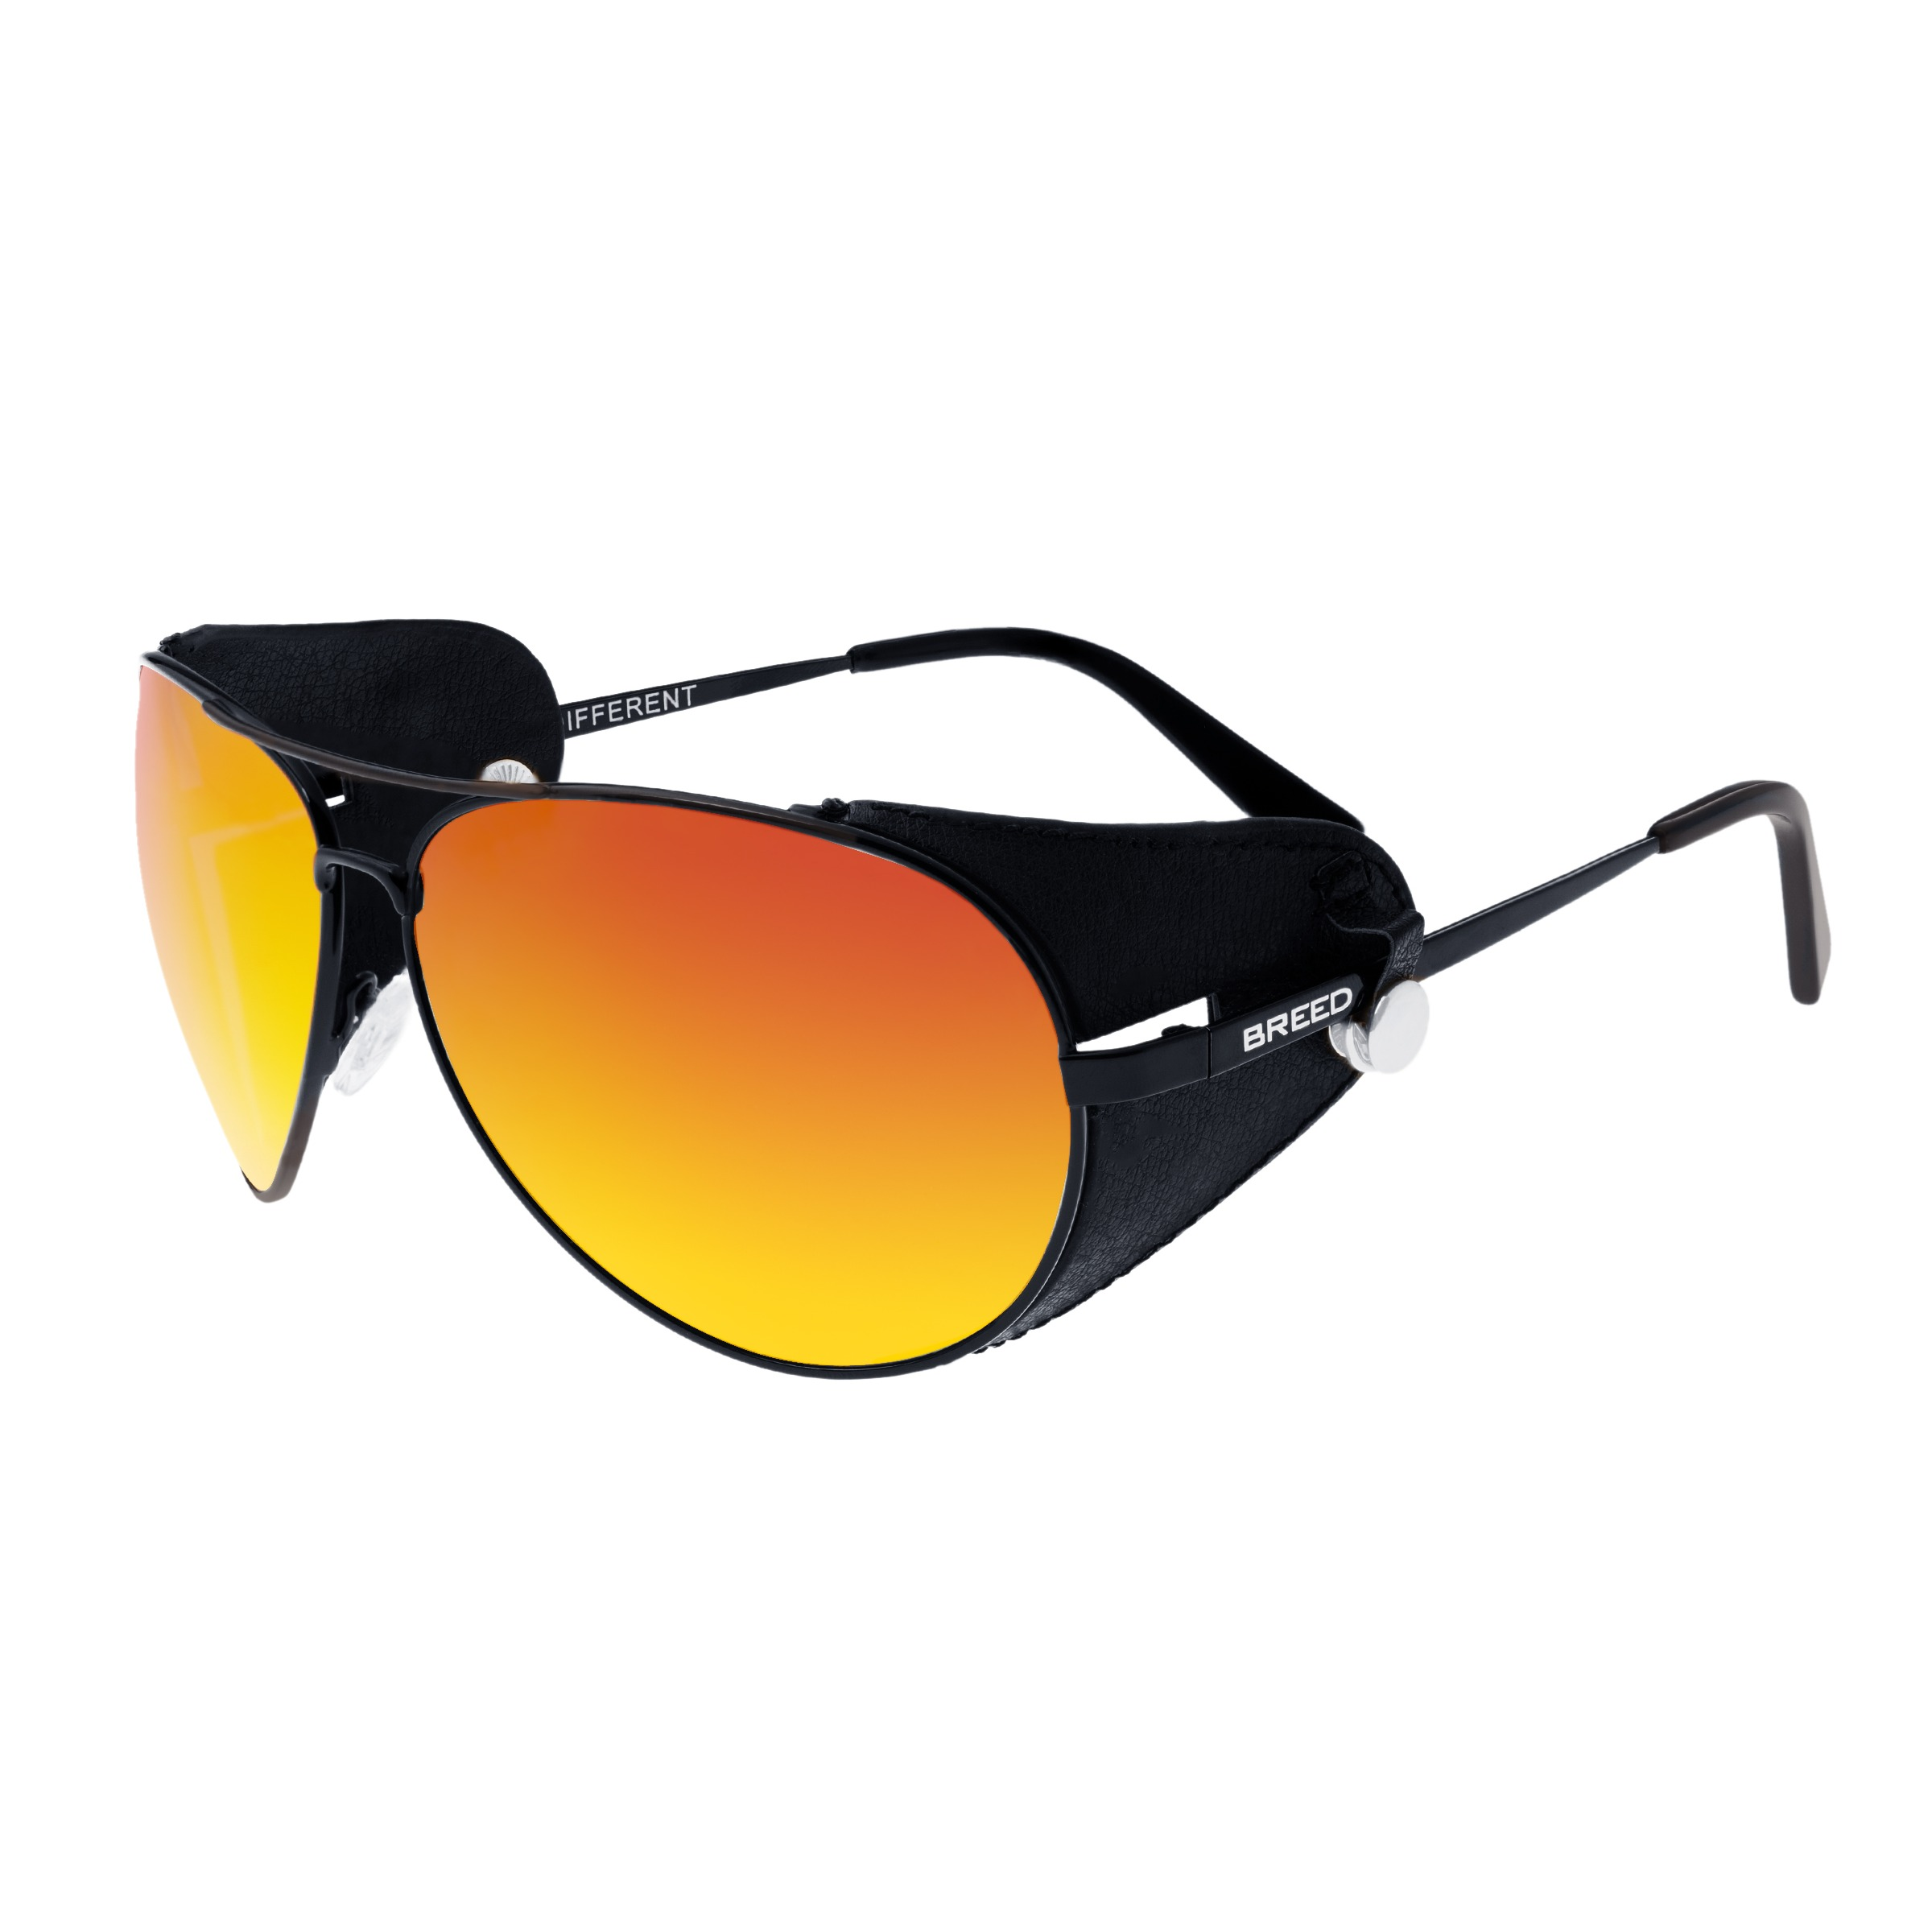 a4f08a9b4206 Breed Sunglasses Eclipse Sunglasses | Up to 63% Off w/ Free Shipping and  Handling